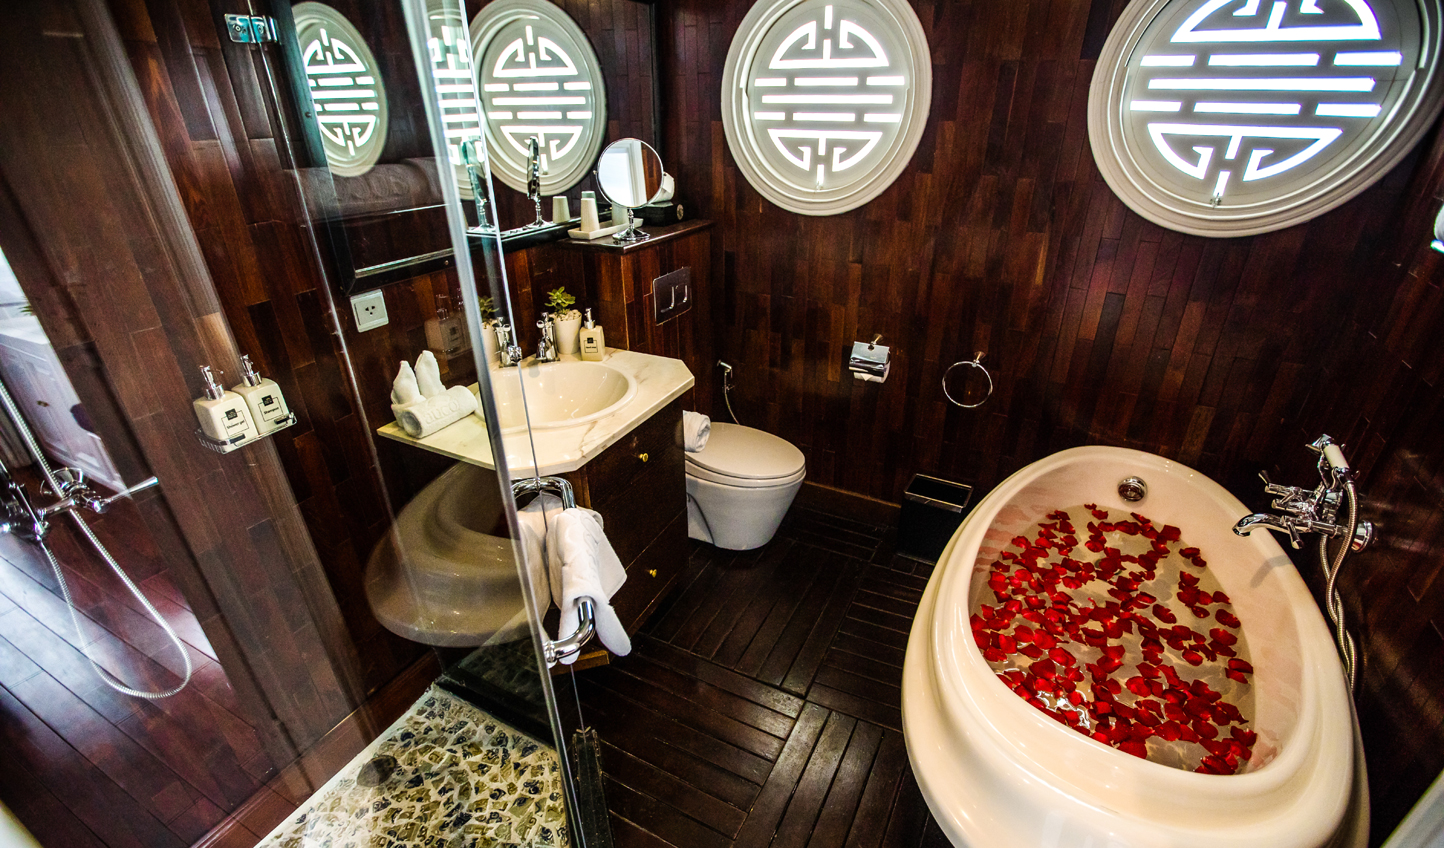 For added luxury, suites come complete with rose-petal strewn bathtubs